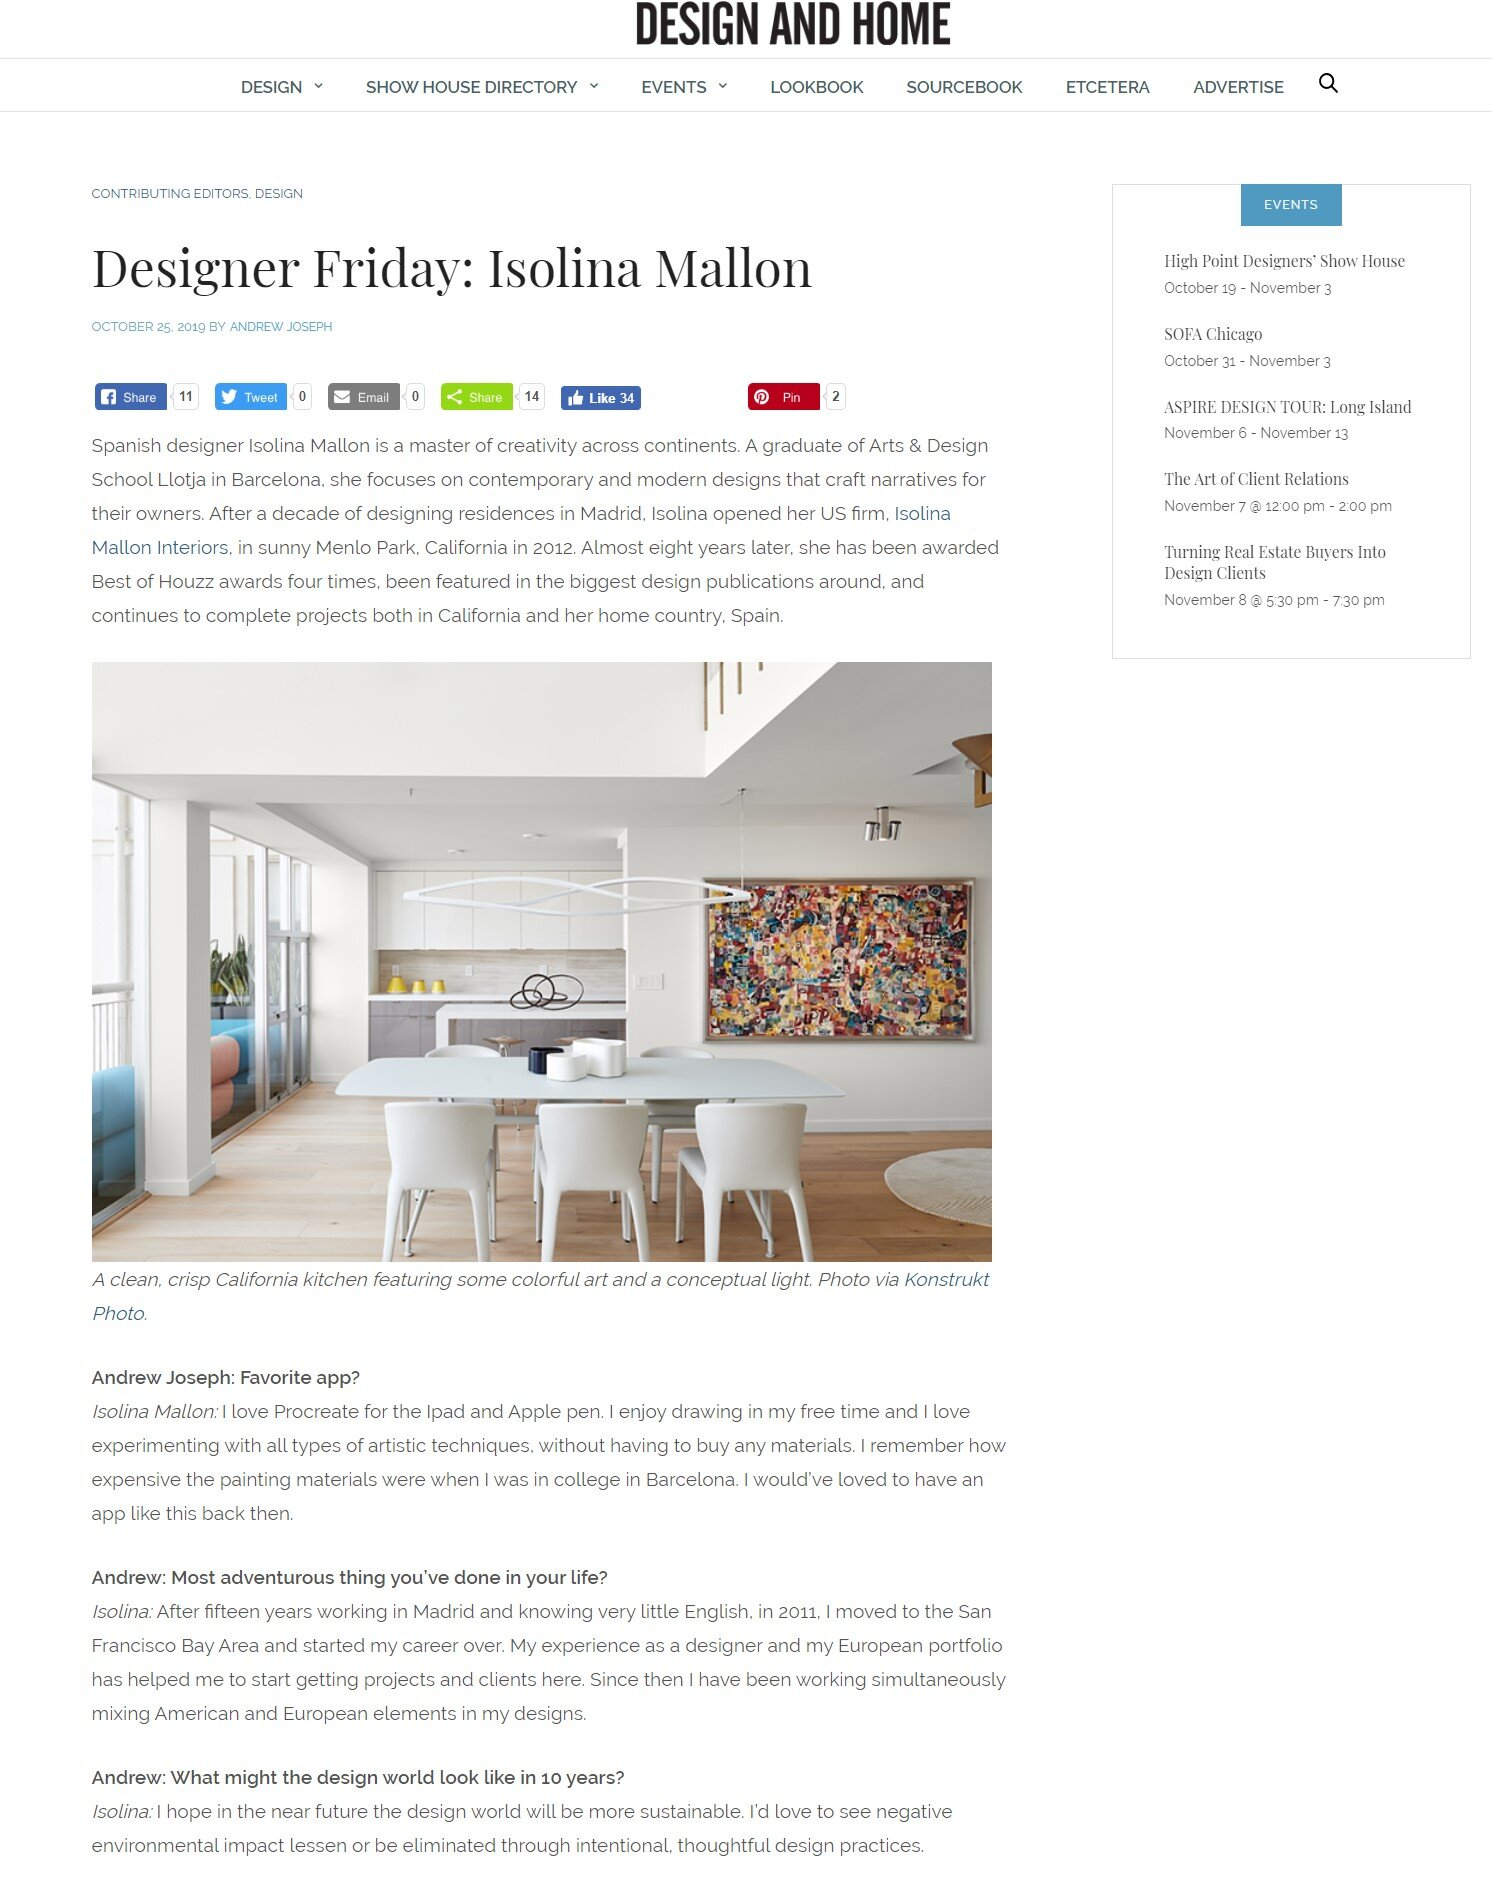 aspire design and home. designer friday: isolina Mallon. october 2019   andrew joseph interviews isolina for his designer friday. they talk a little about design and some more personal questions.   read more.